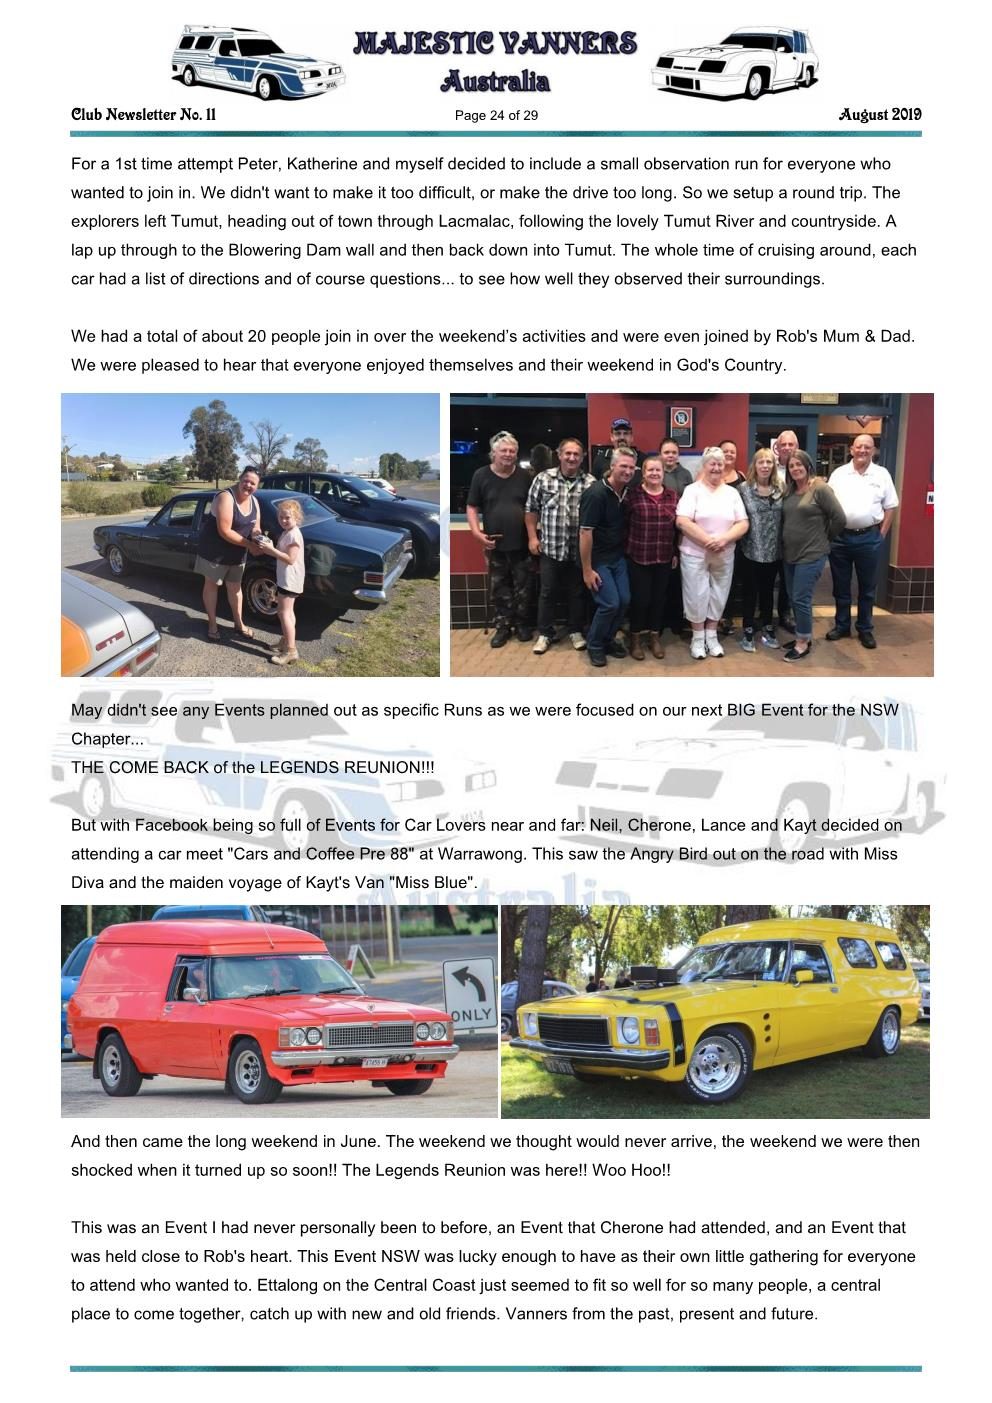 MAJESTIC VANNERS Newsletter Issue No: 11 August 2019 Mv_new62